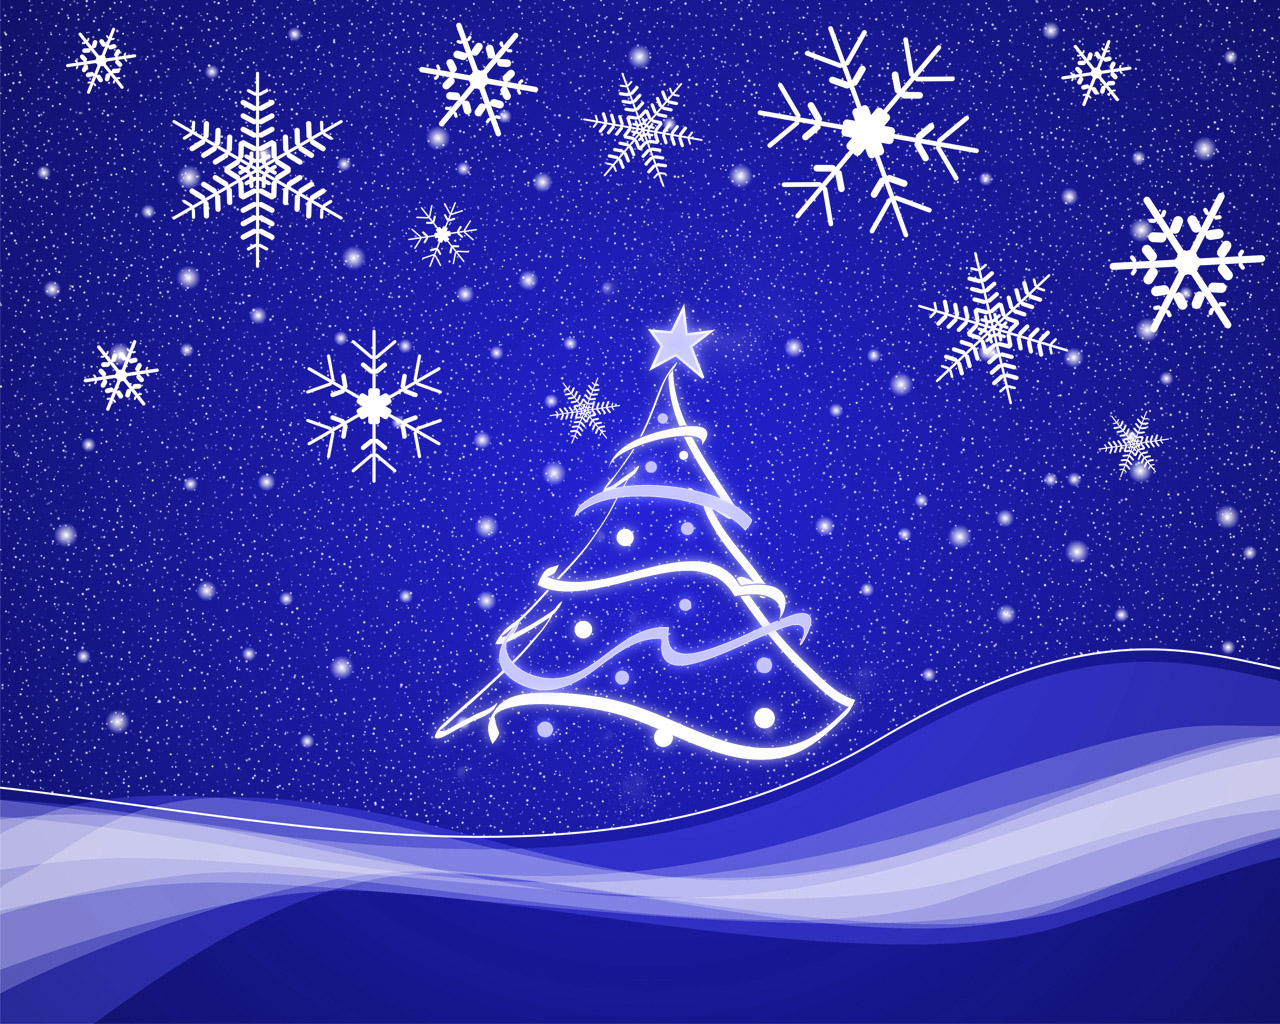 Snowflakes And Christmas Tree Stylized